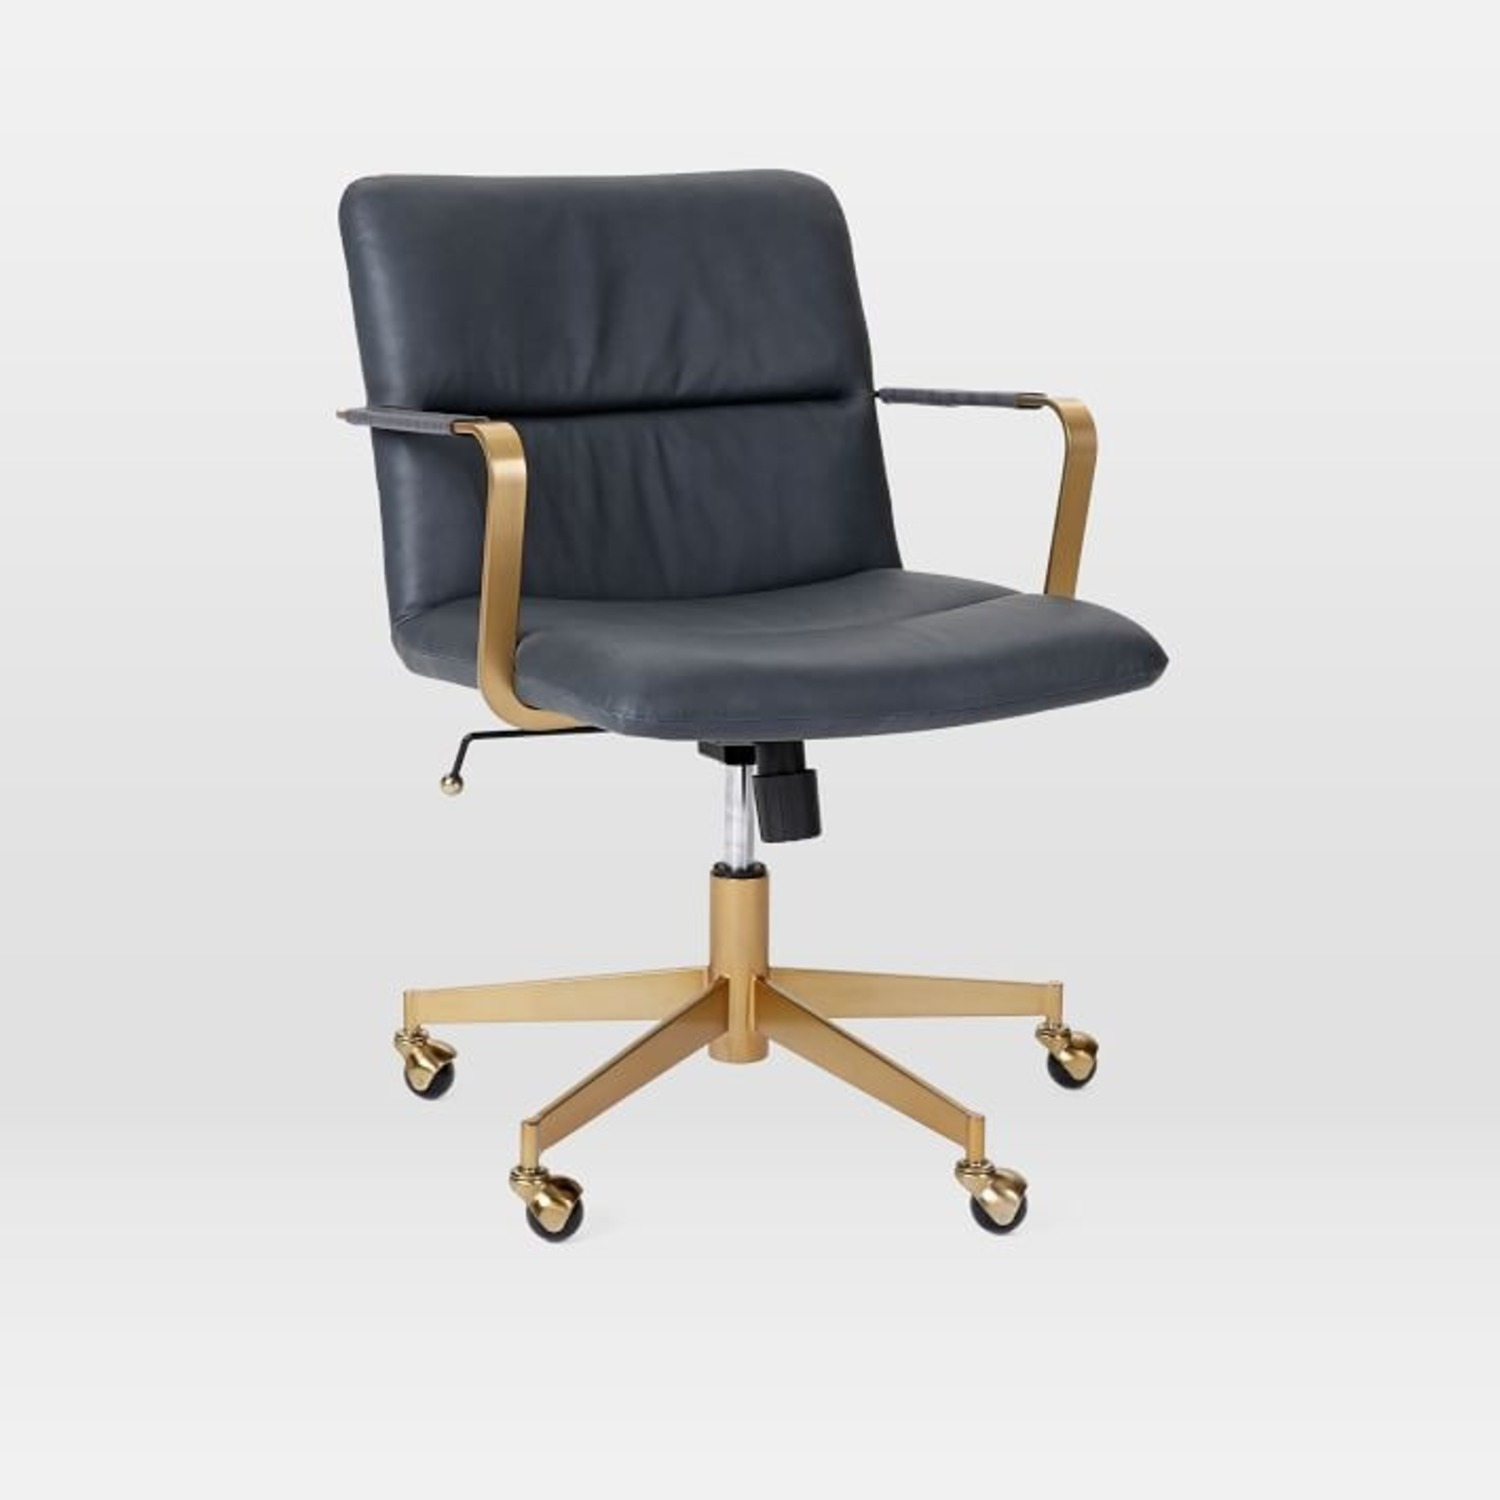 West Elm Copper Mid-Century Leather Office Chair - image-1